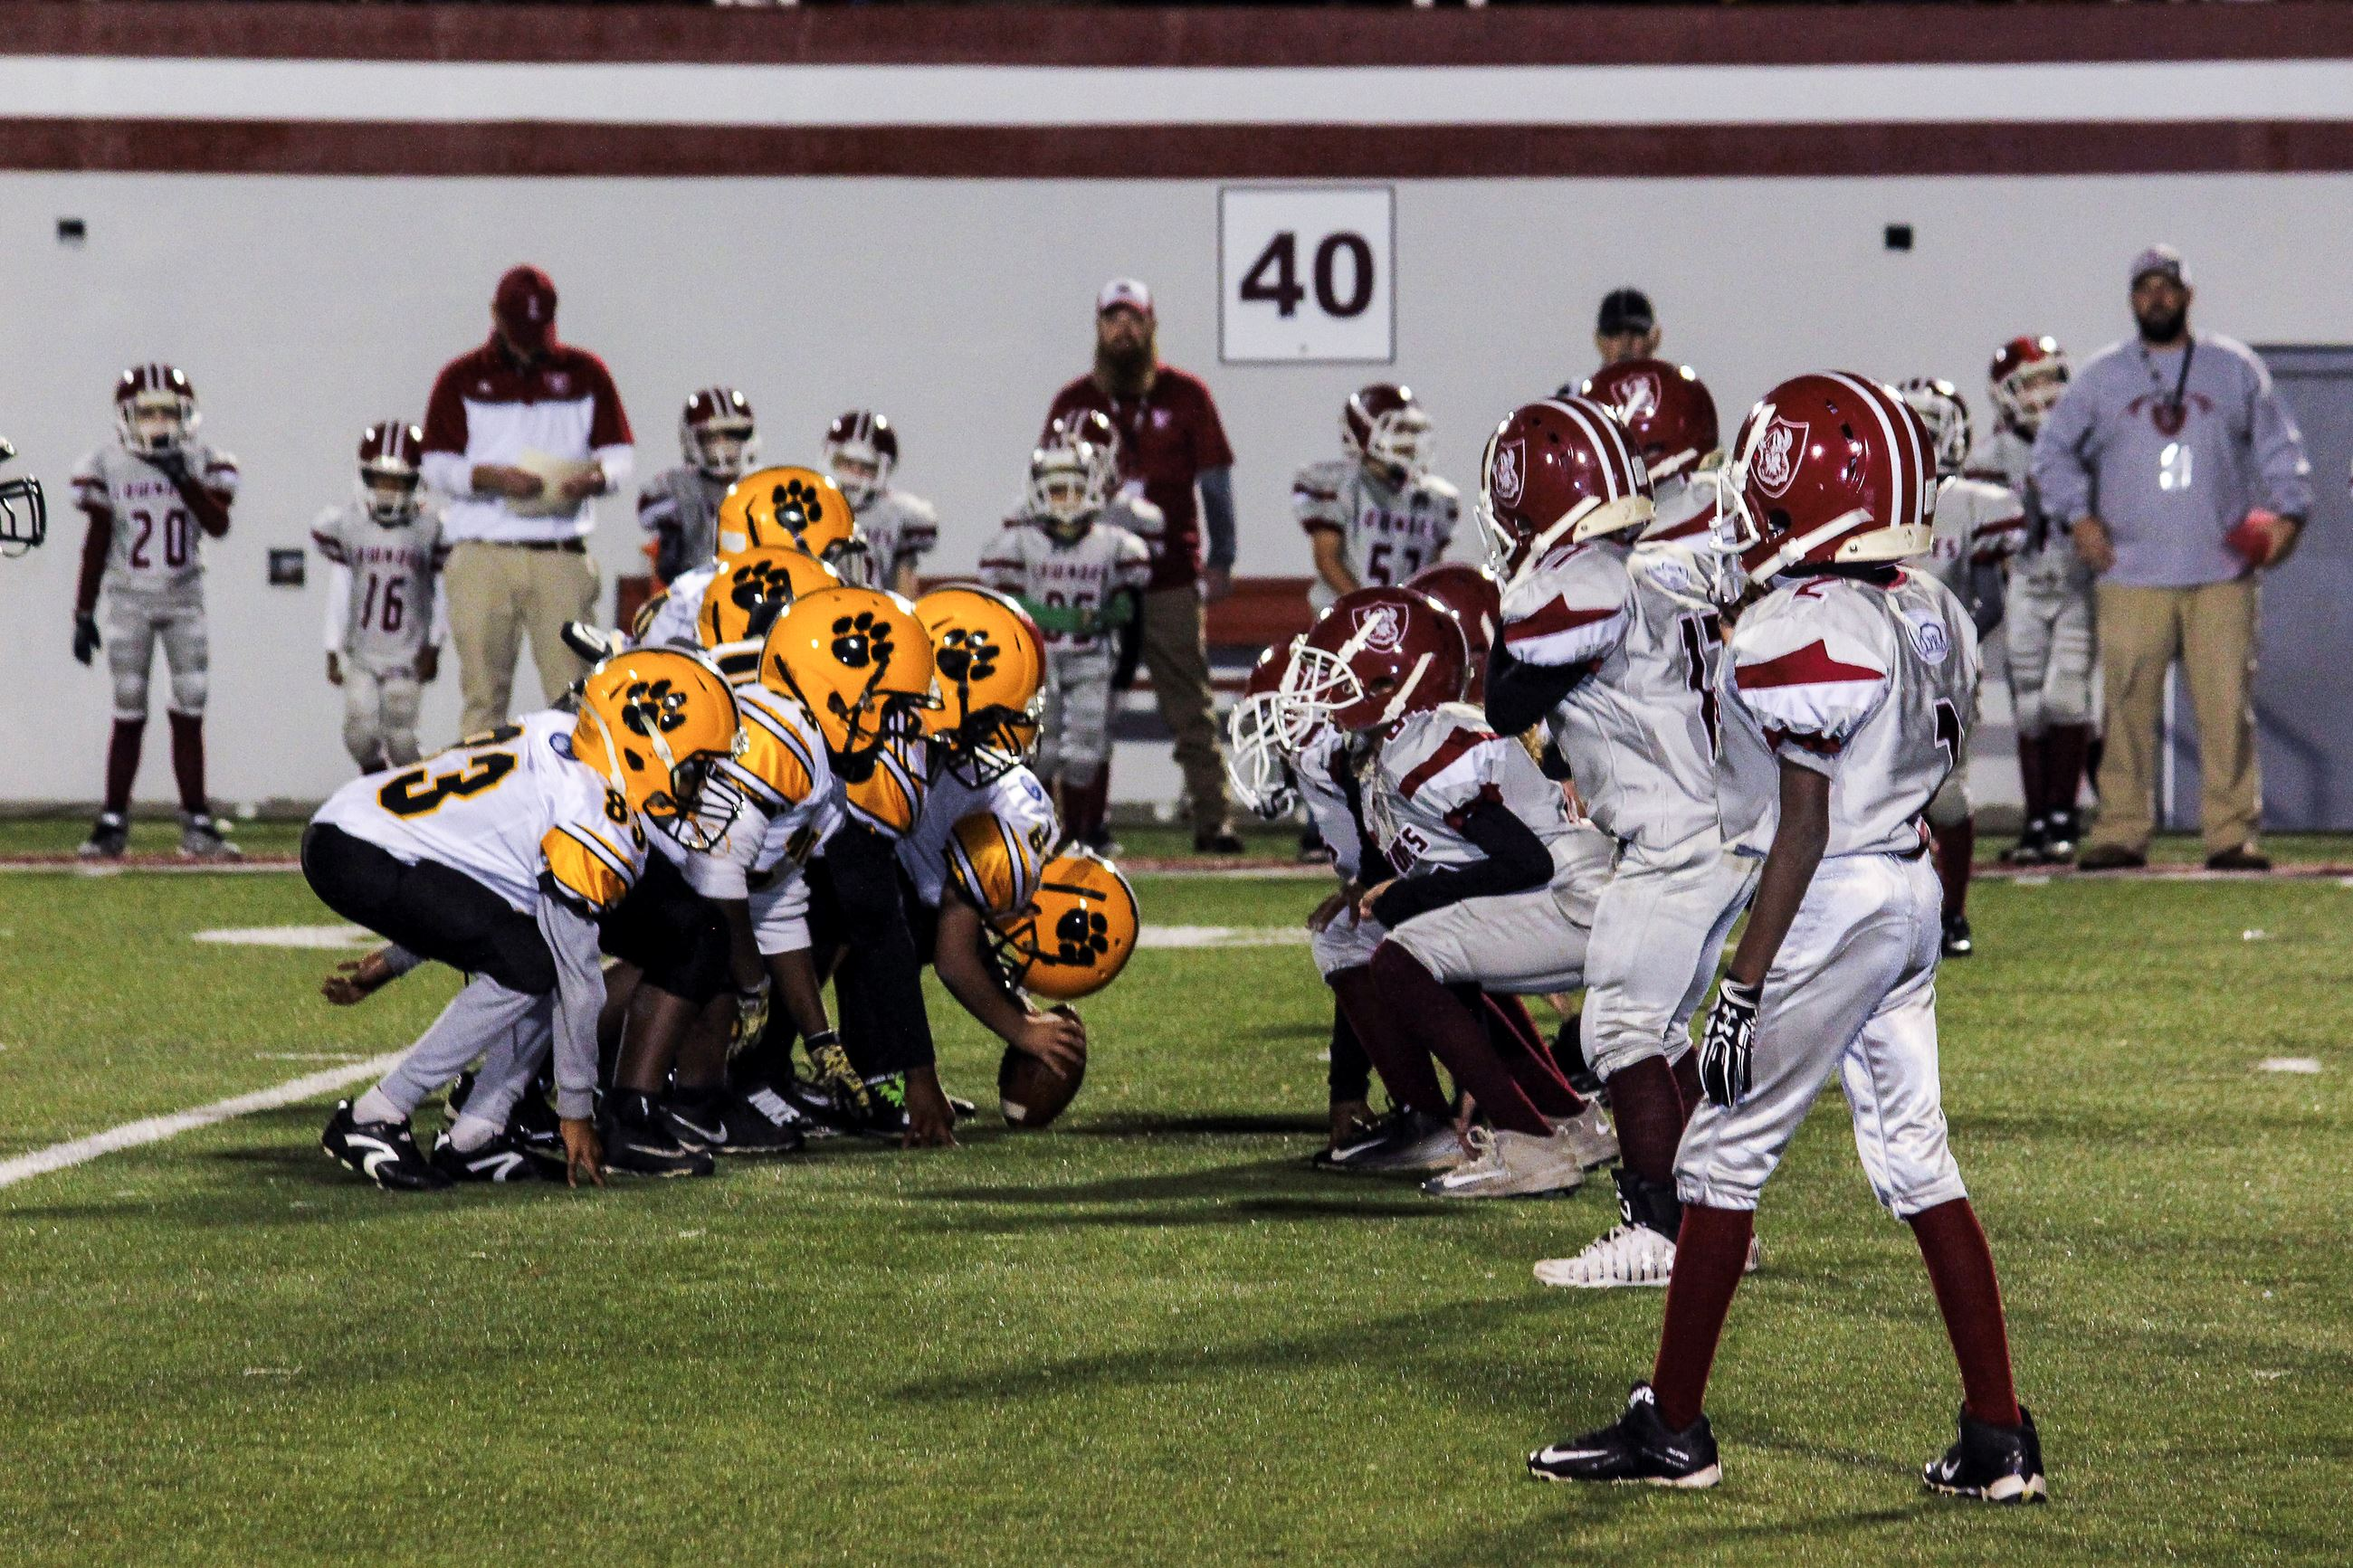 Image of football players on the line of scrimmage.